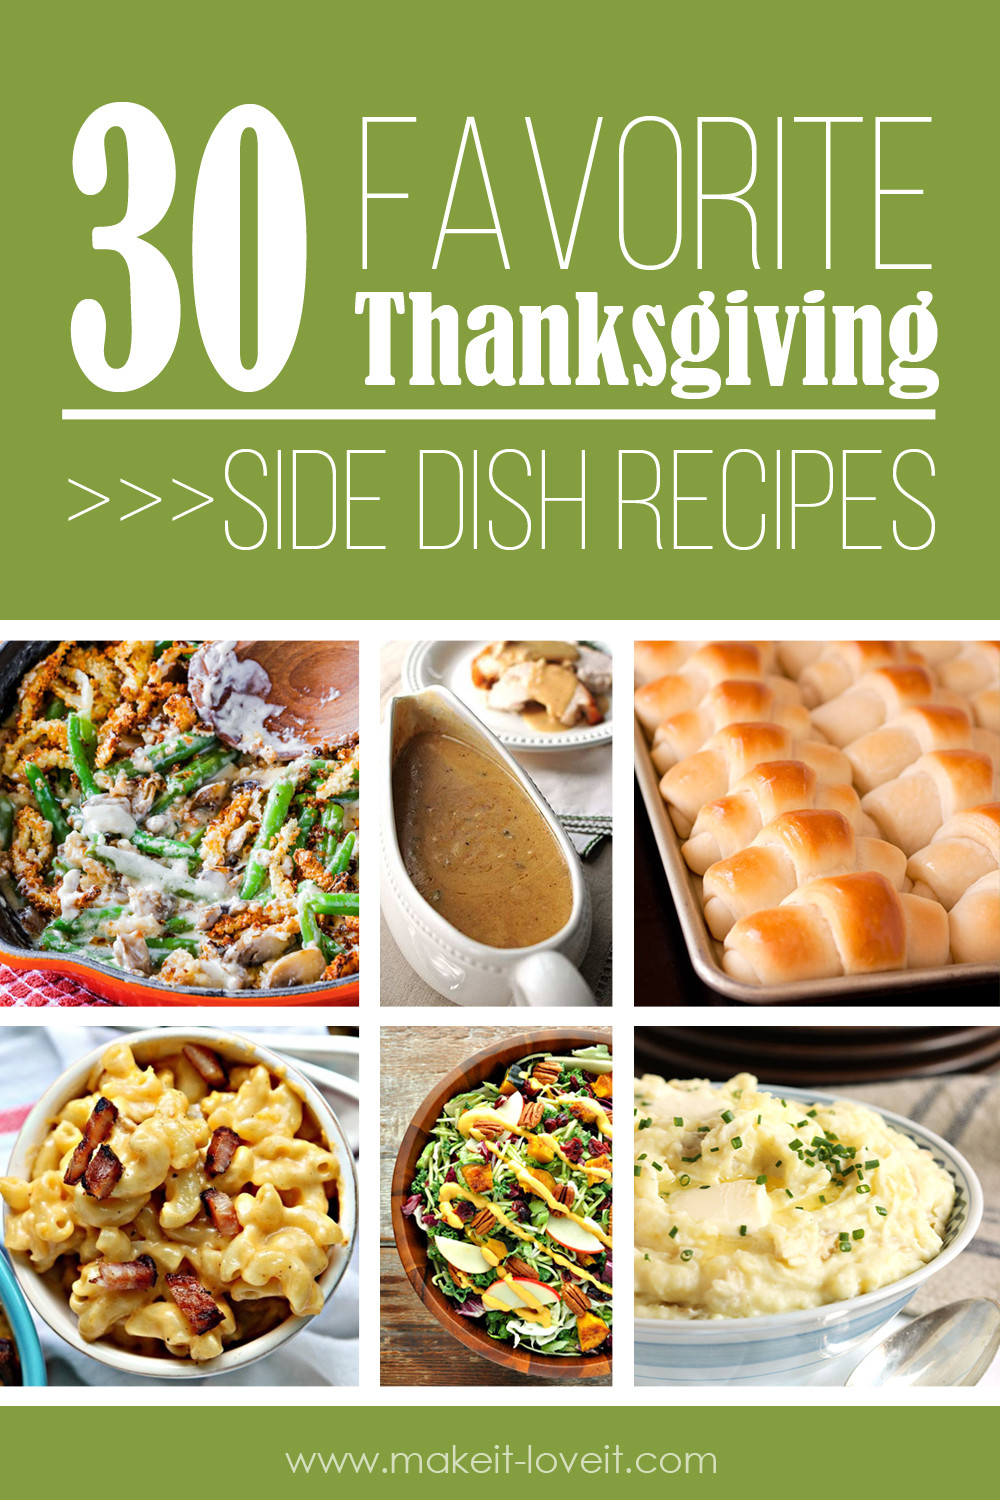 Favorite Thanksgiving Side Dishes  30 Favorite Thanksgiving Side Dish Recipes